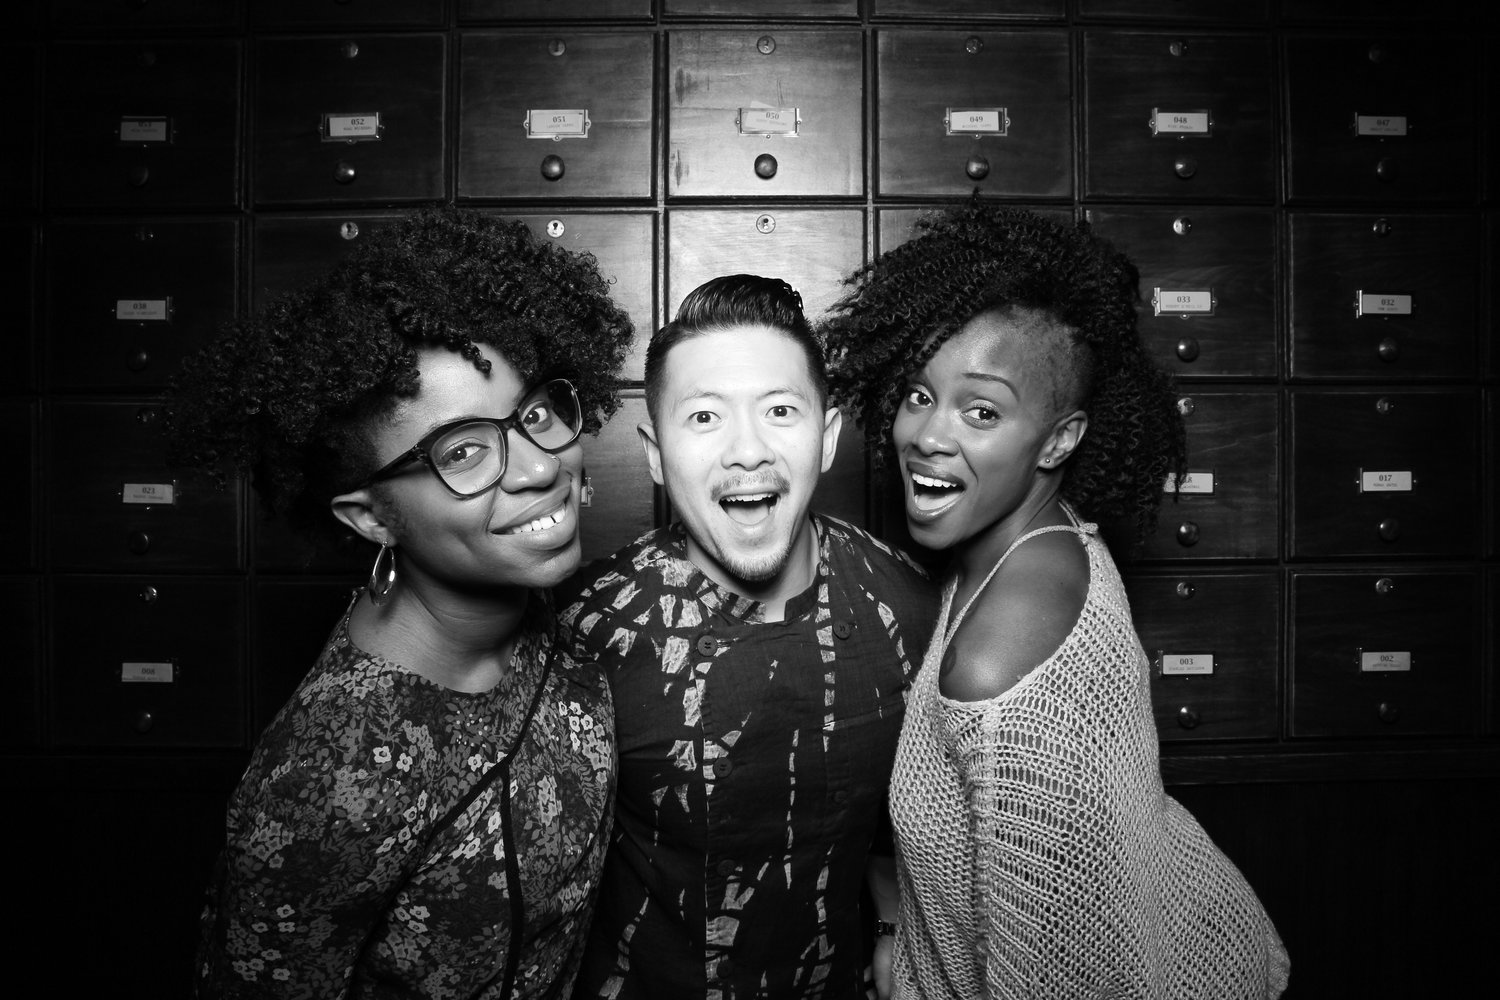 59951b19d1d Corporate clients pose for a photo booth picture at Untitled Supper Club in  the timeless Whiskey